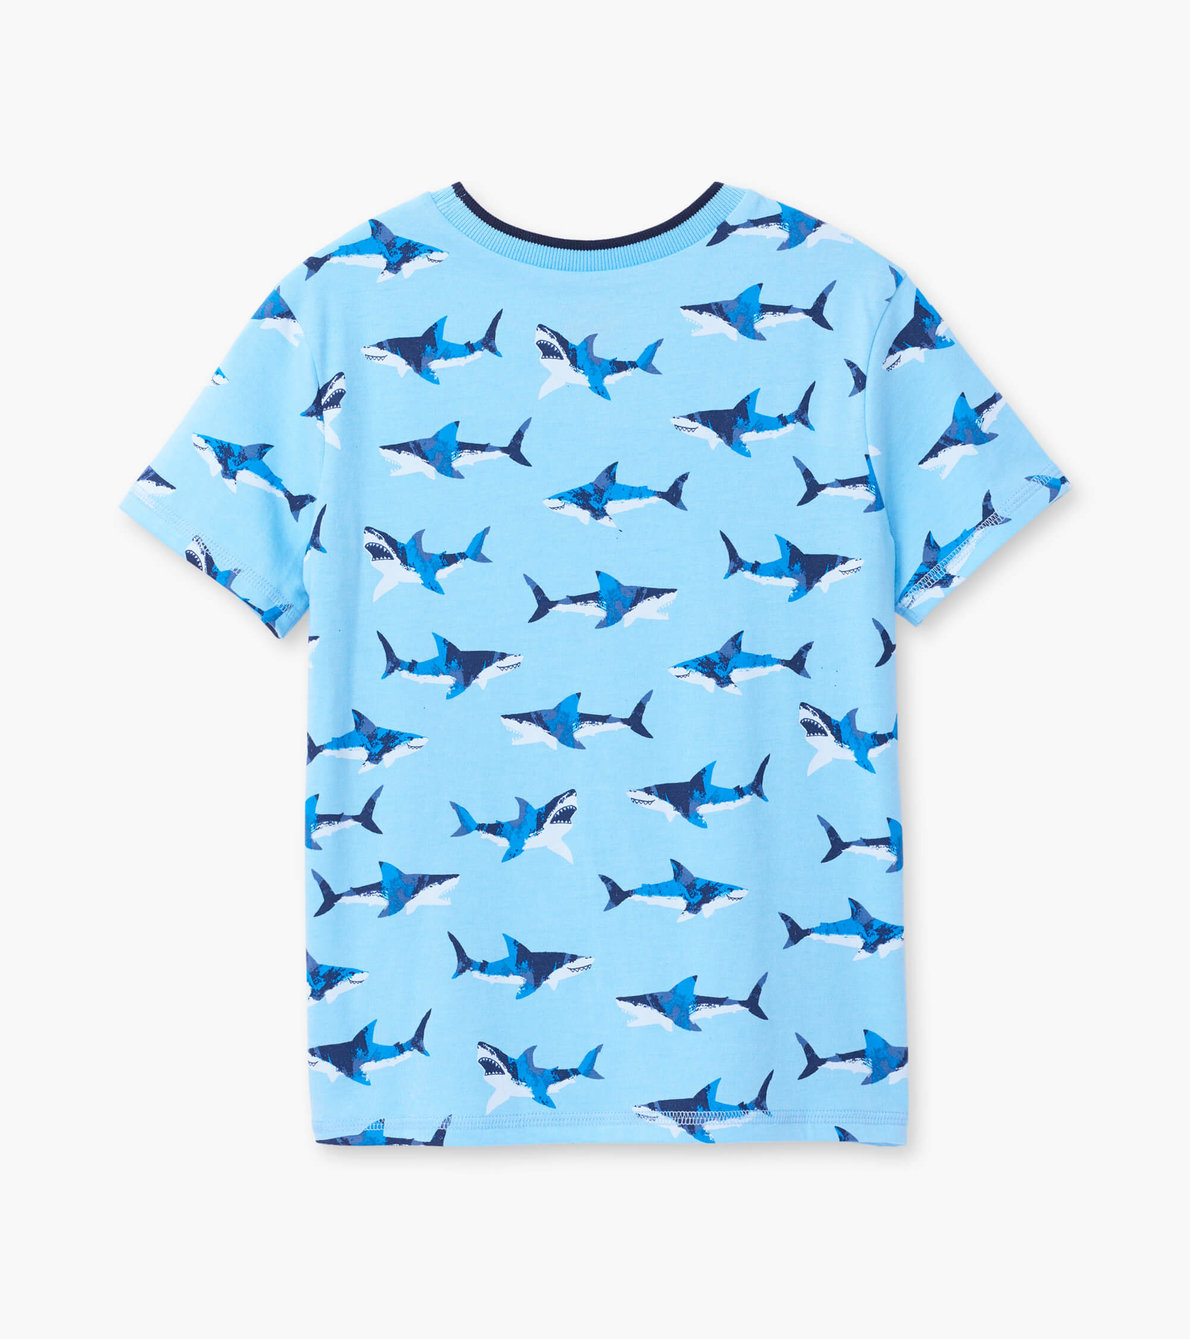 View larger image of Shark Frenzy Graphic Tee